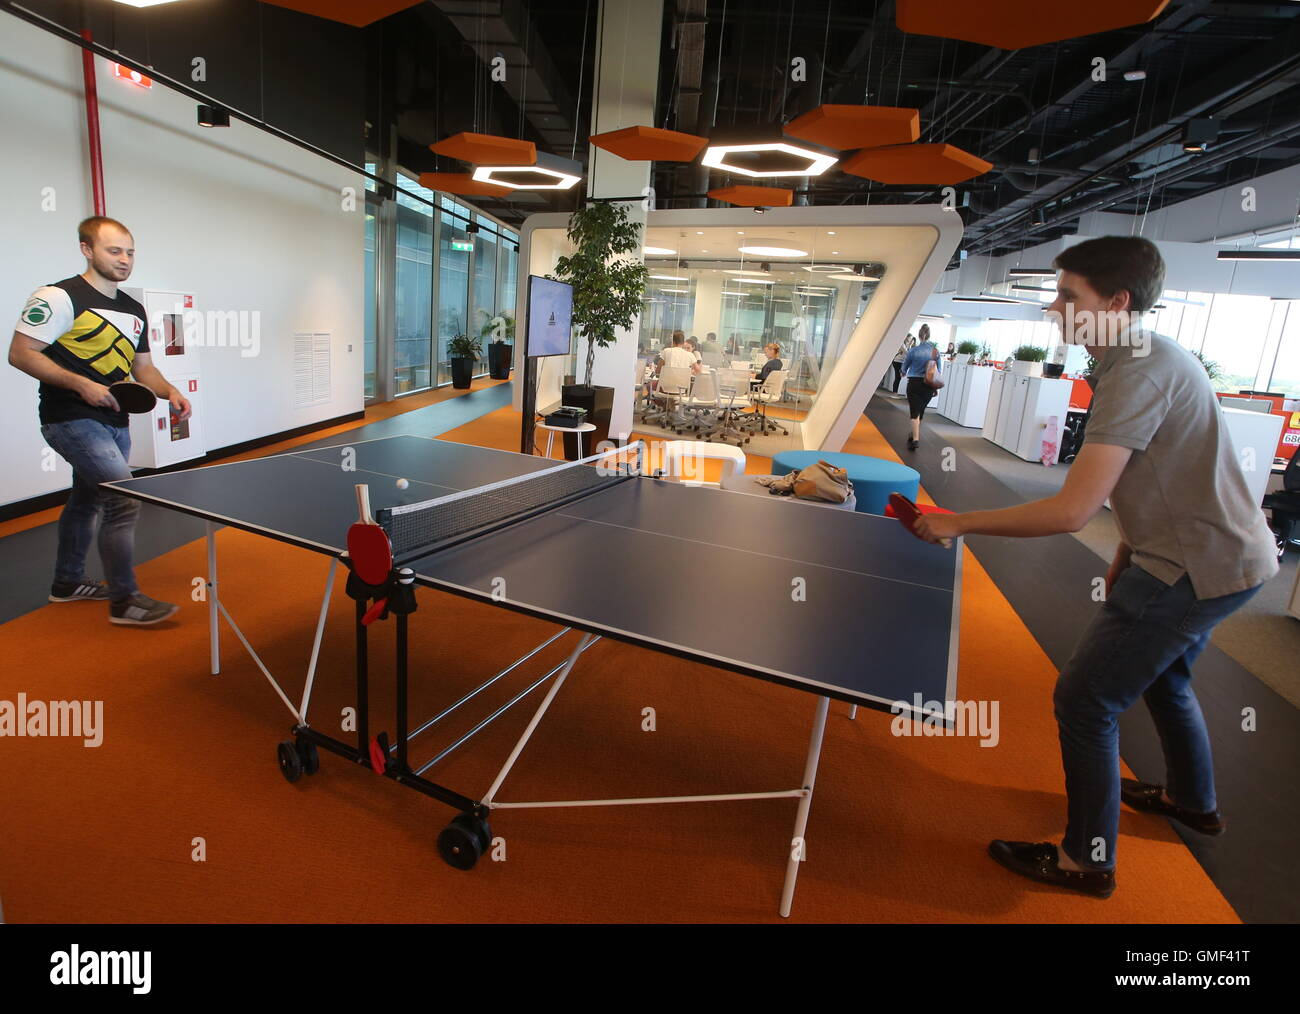 Moscow russia 25th aug 2016 people play table tennis for Table moscow